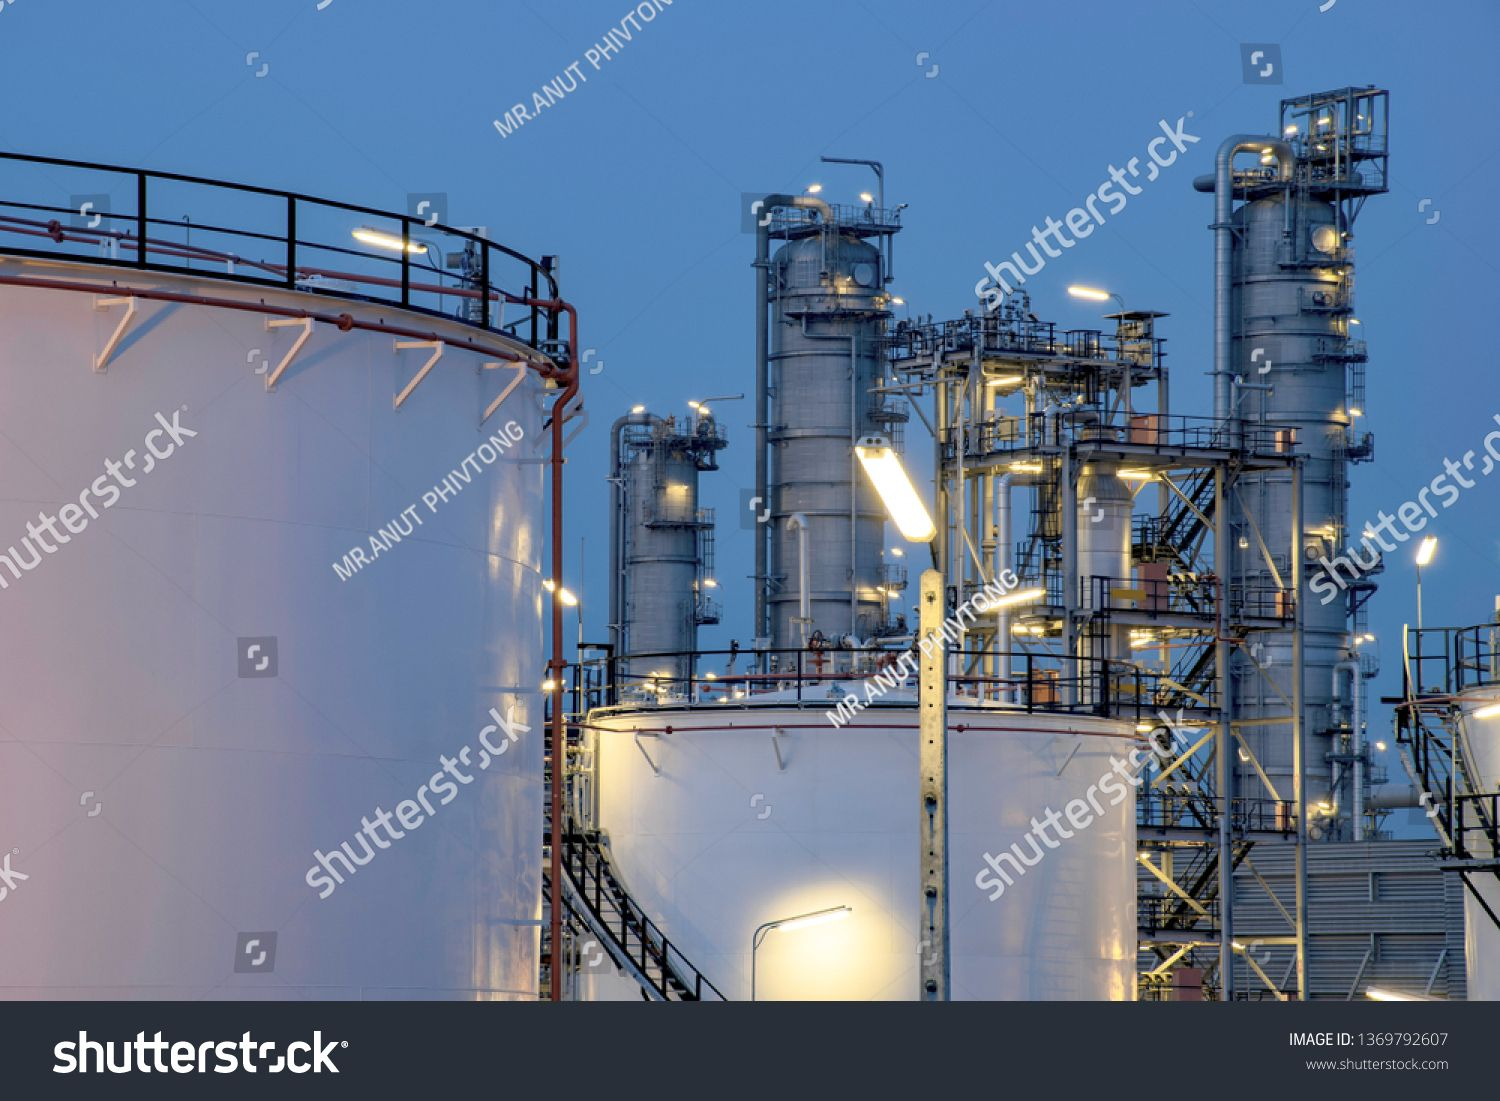 Oil And Gas Industrial Oil Refinery Plant Form Industry Refinery Factory Natural Gas Storage Tank And Pip With Images Oil Refinery Stock Photos Oil And Gas